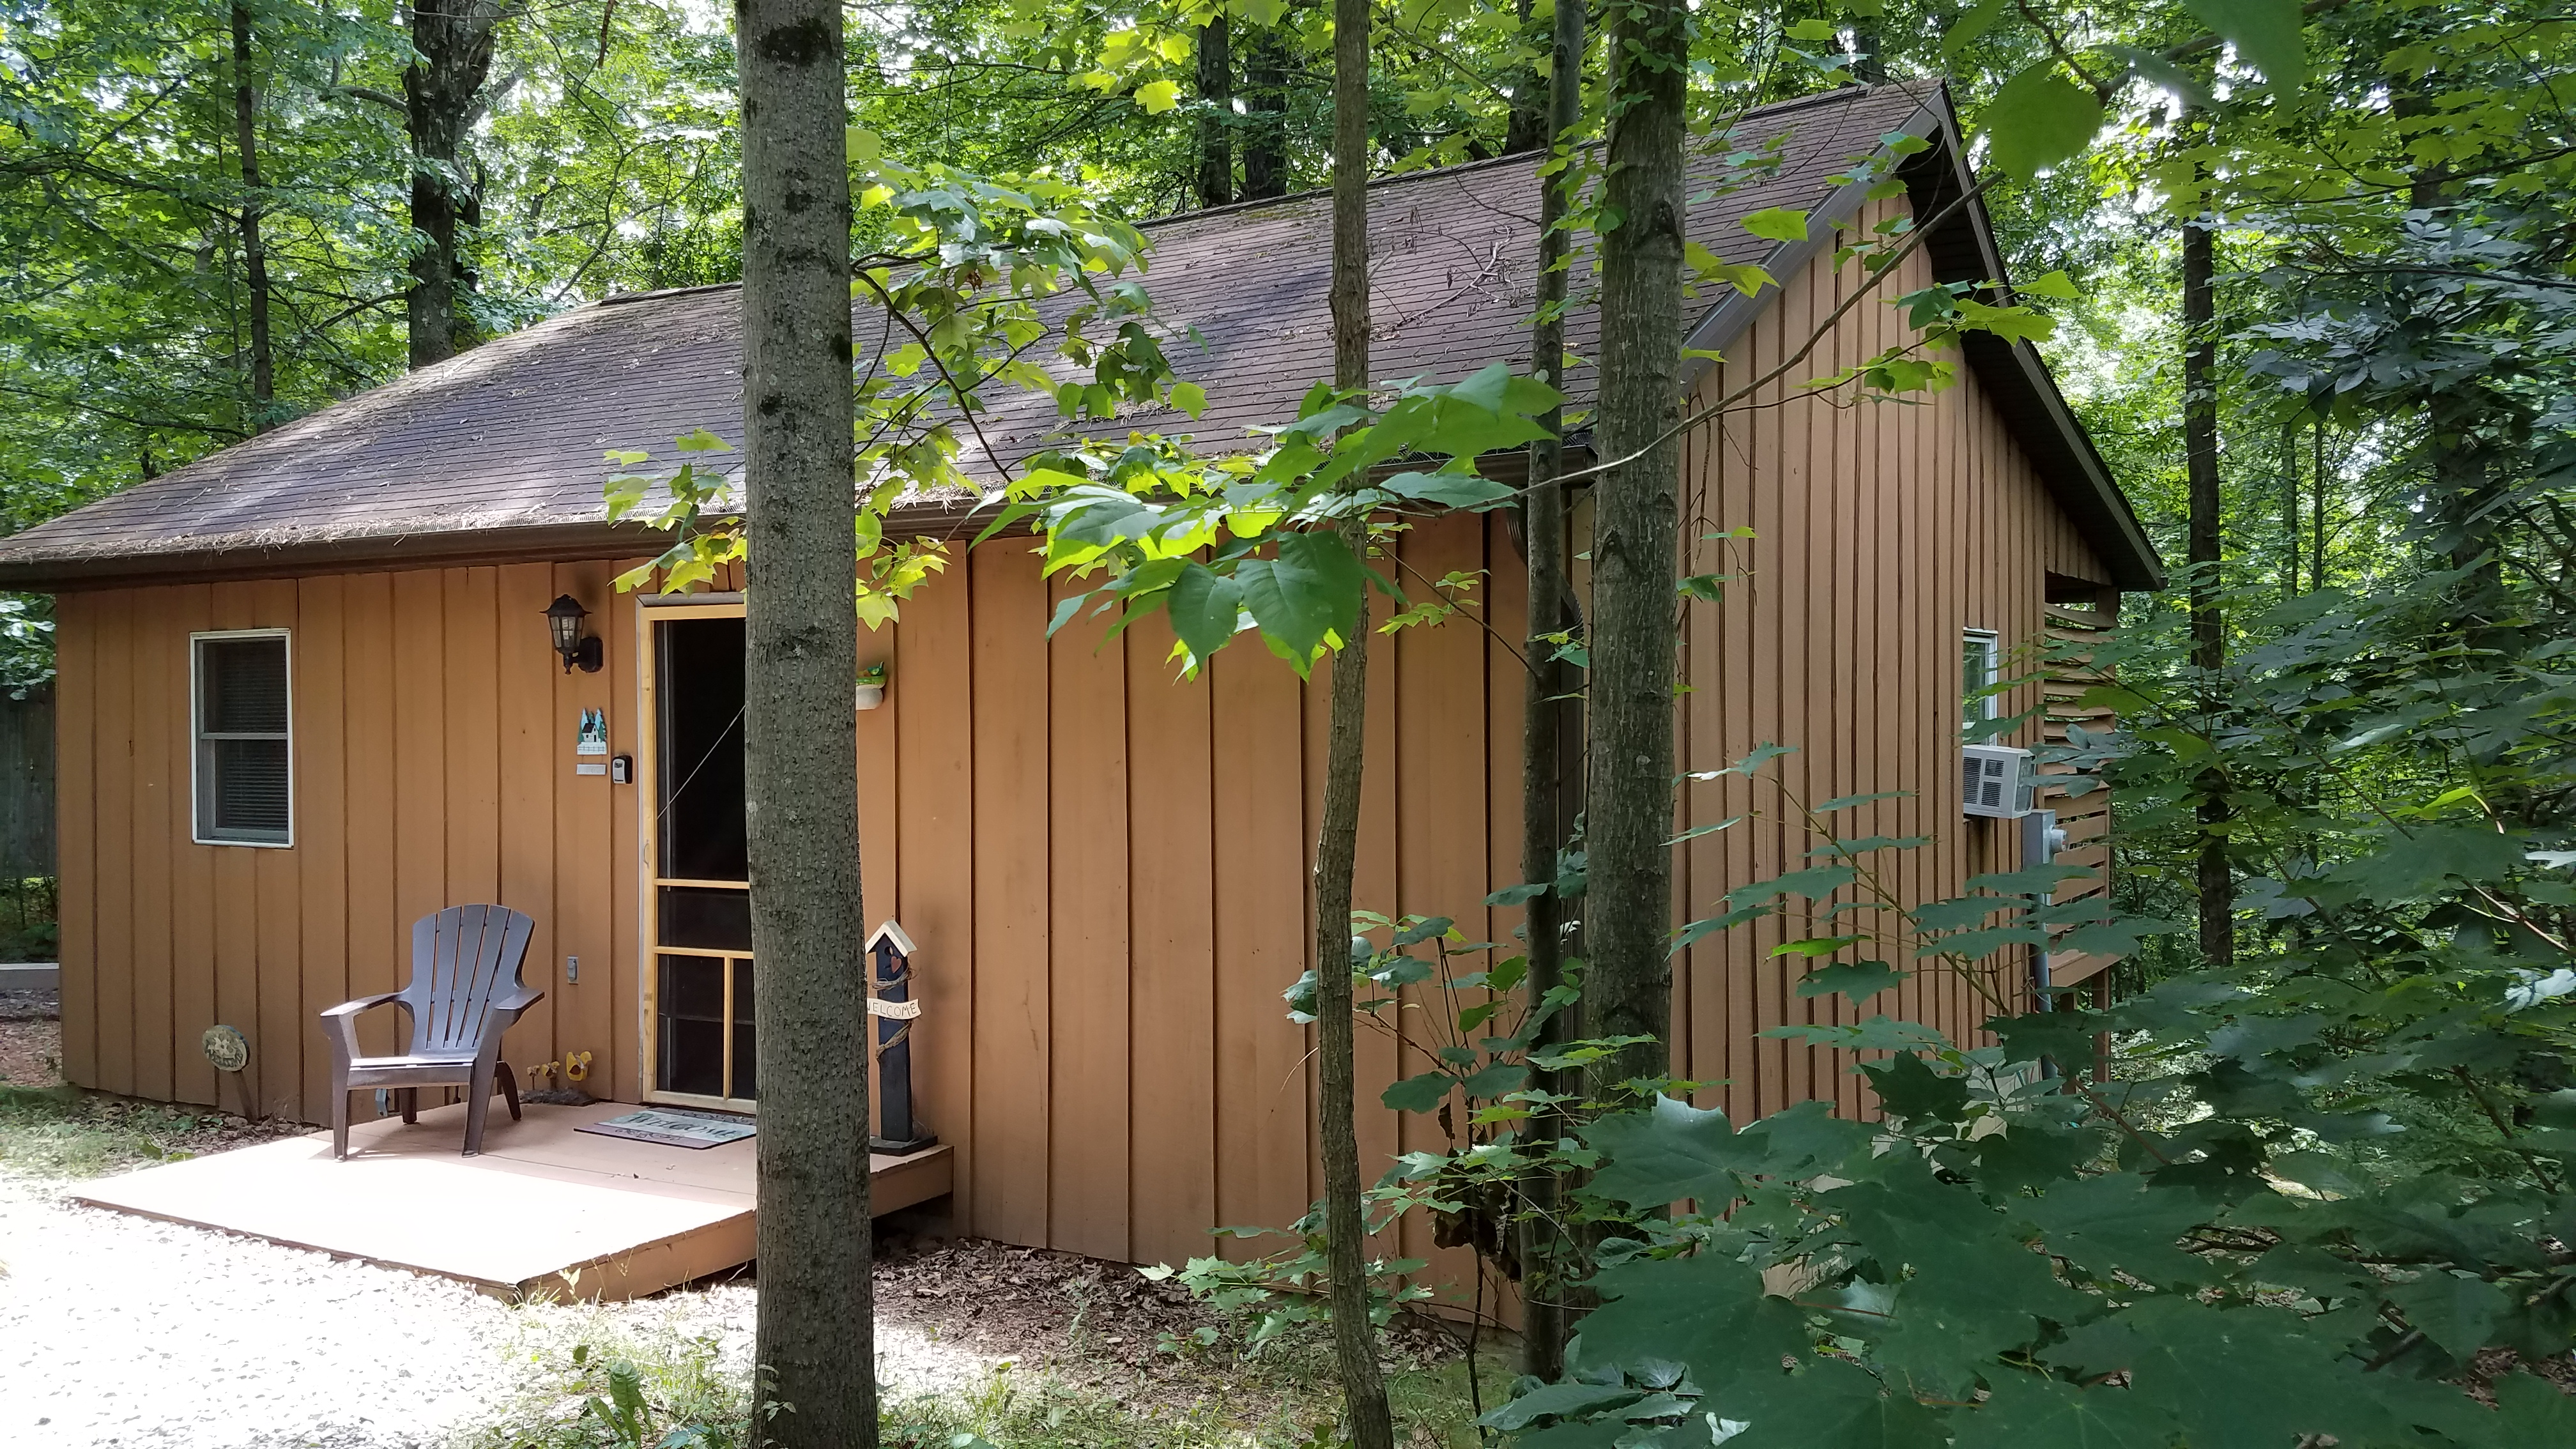 Welcome to the Nest Cabin - One bedroom cabin with hot tub on covered back porch.  Decorated in a shabby chic style.